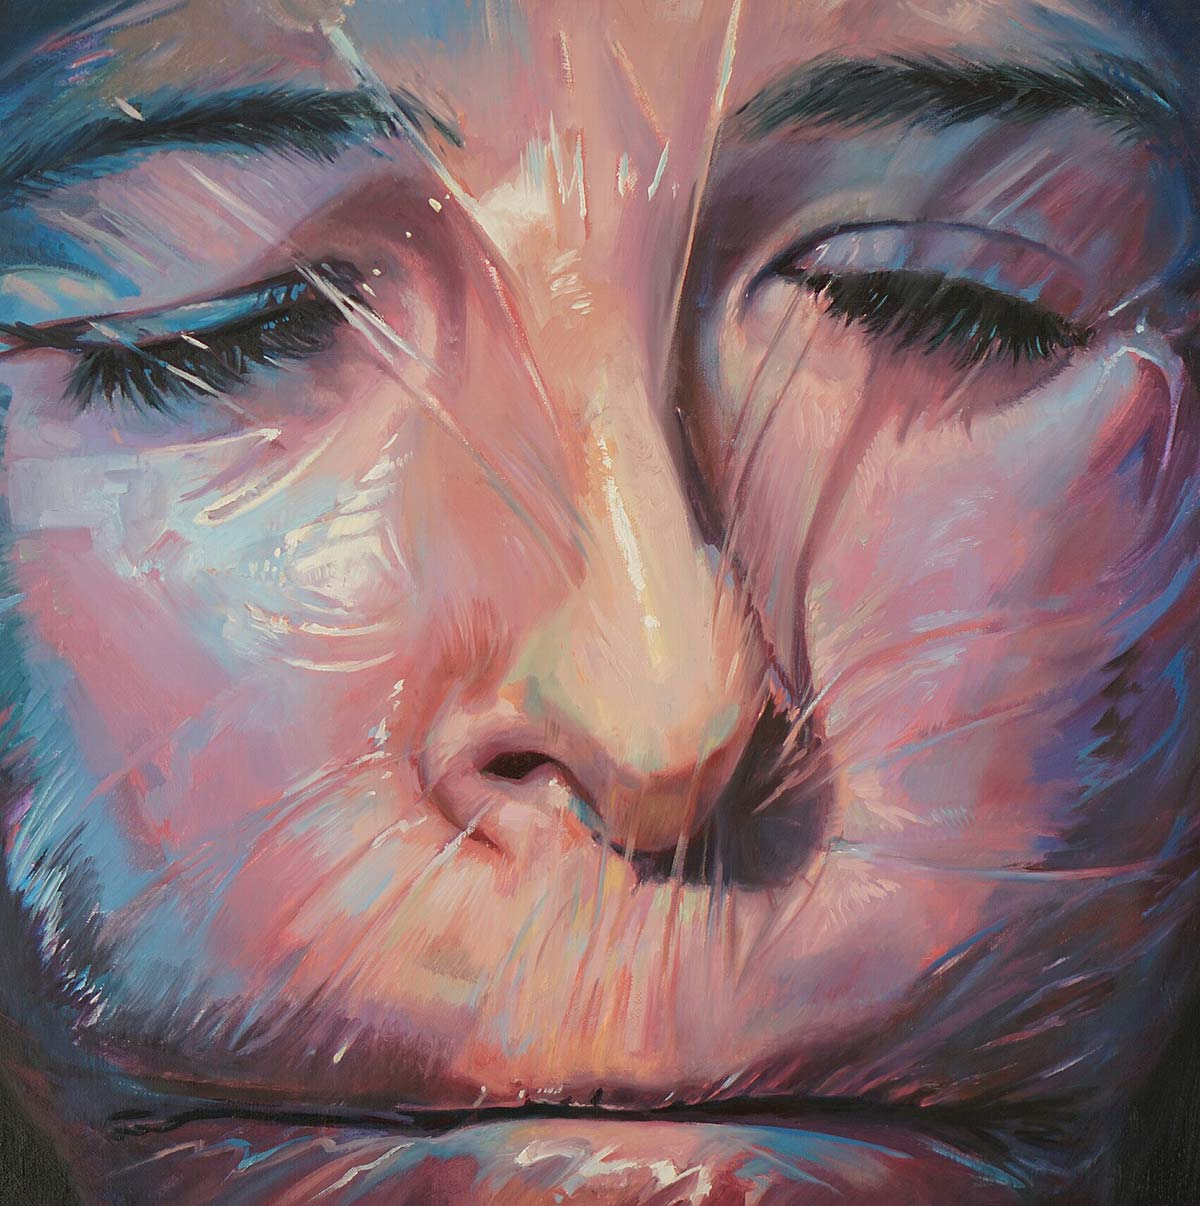 Oil portrait painting of female face wrapped in plastic